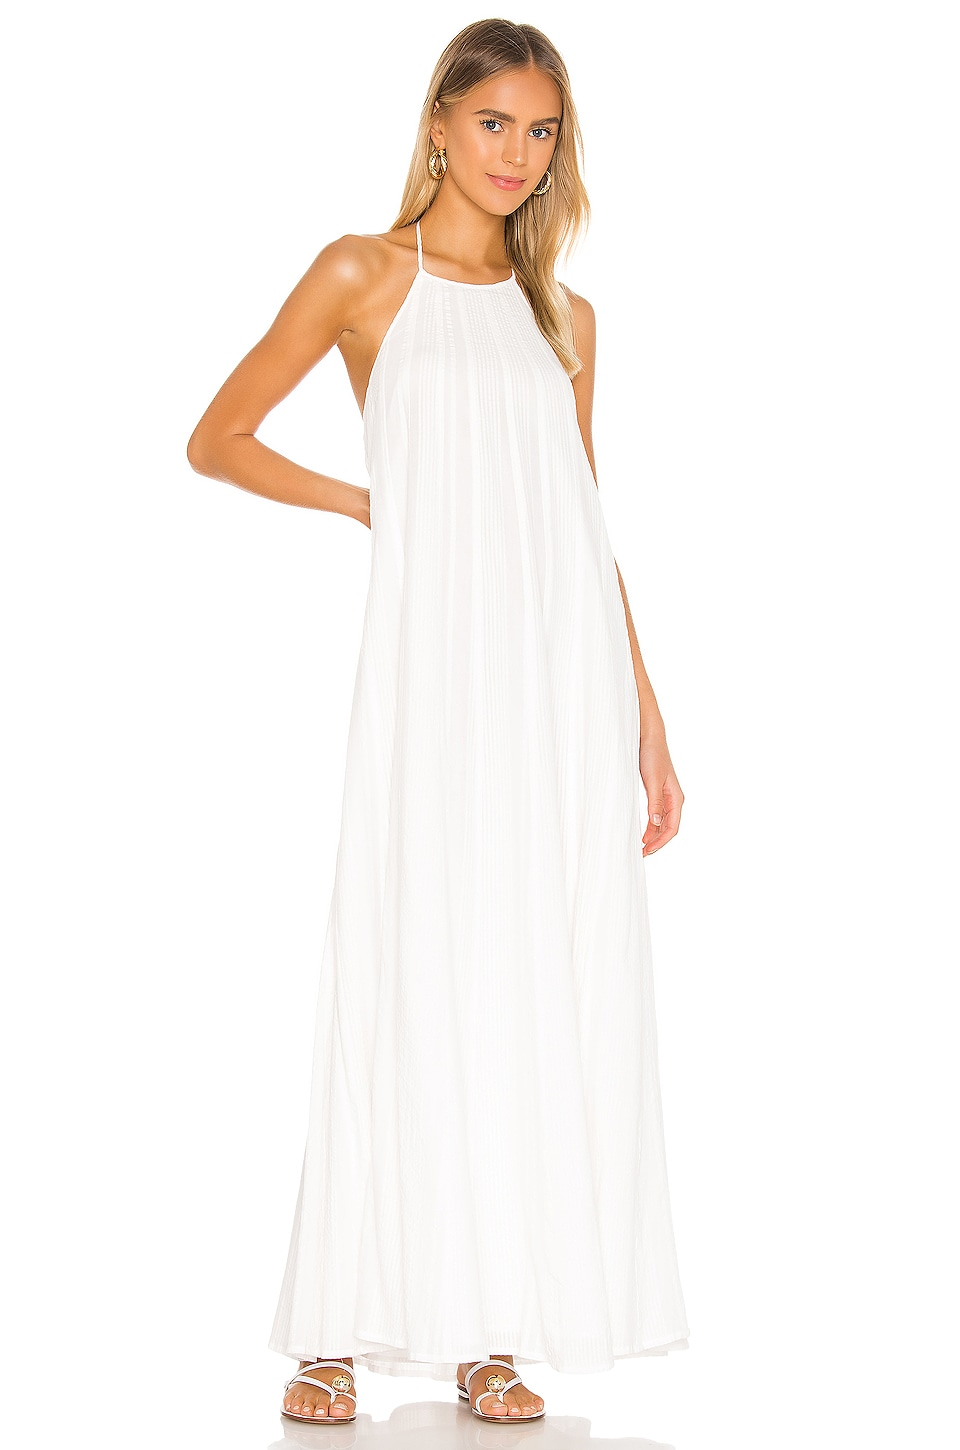 L Academie The Phila Maxi Dress In White Revolve Check out our ivory maxi dress selection for the very best in unique or custom, handmade pieces from our dresses shops. l academie